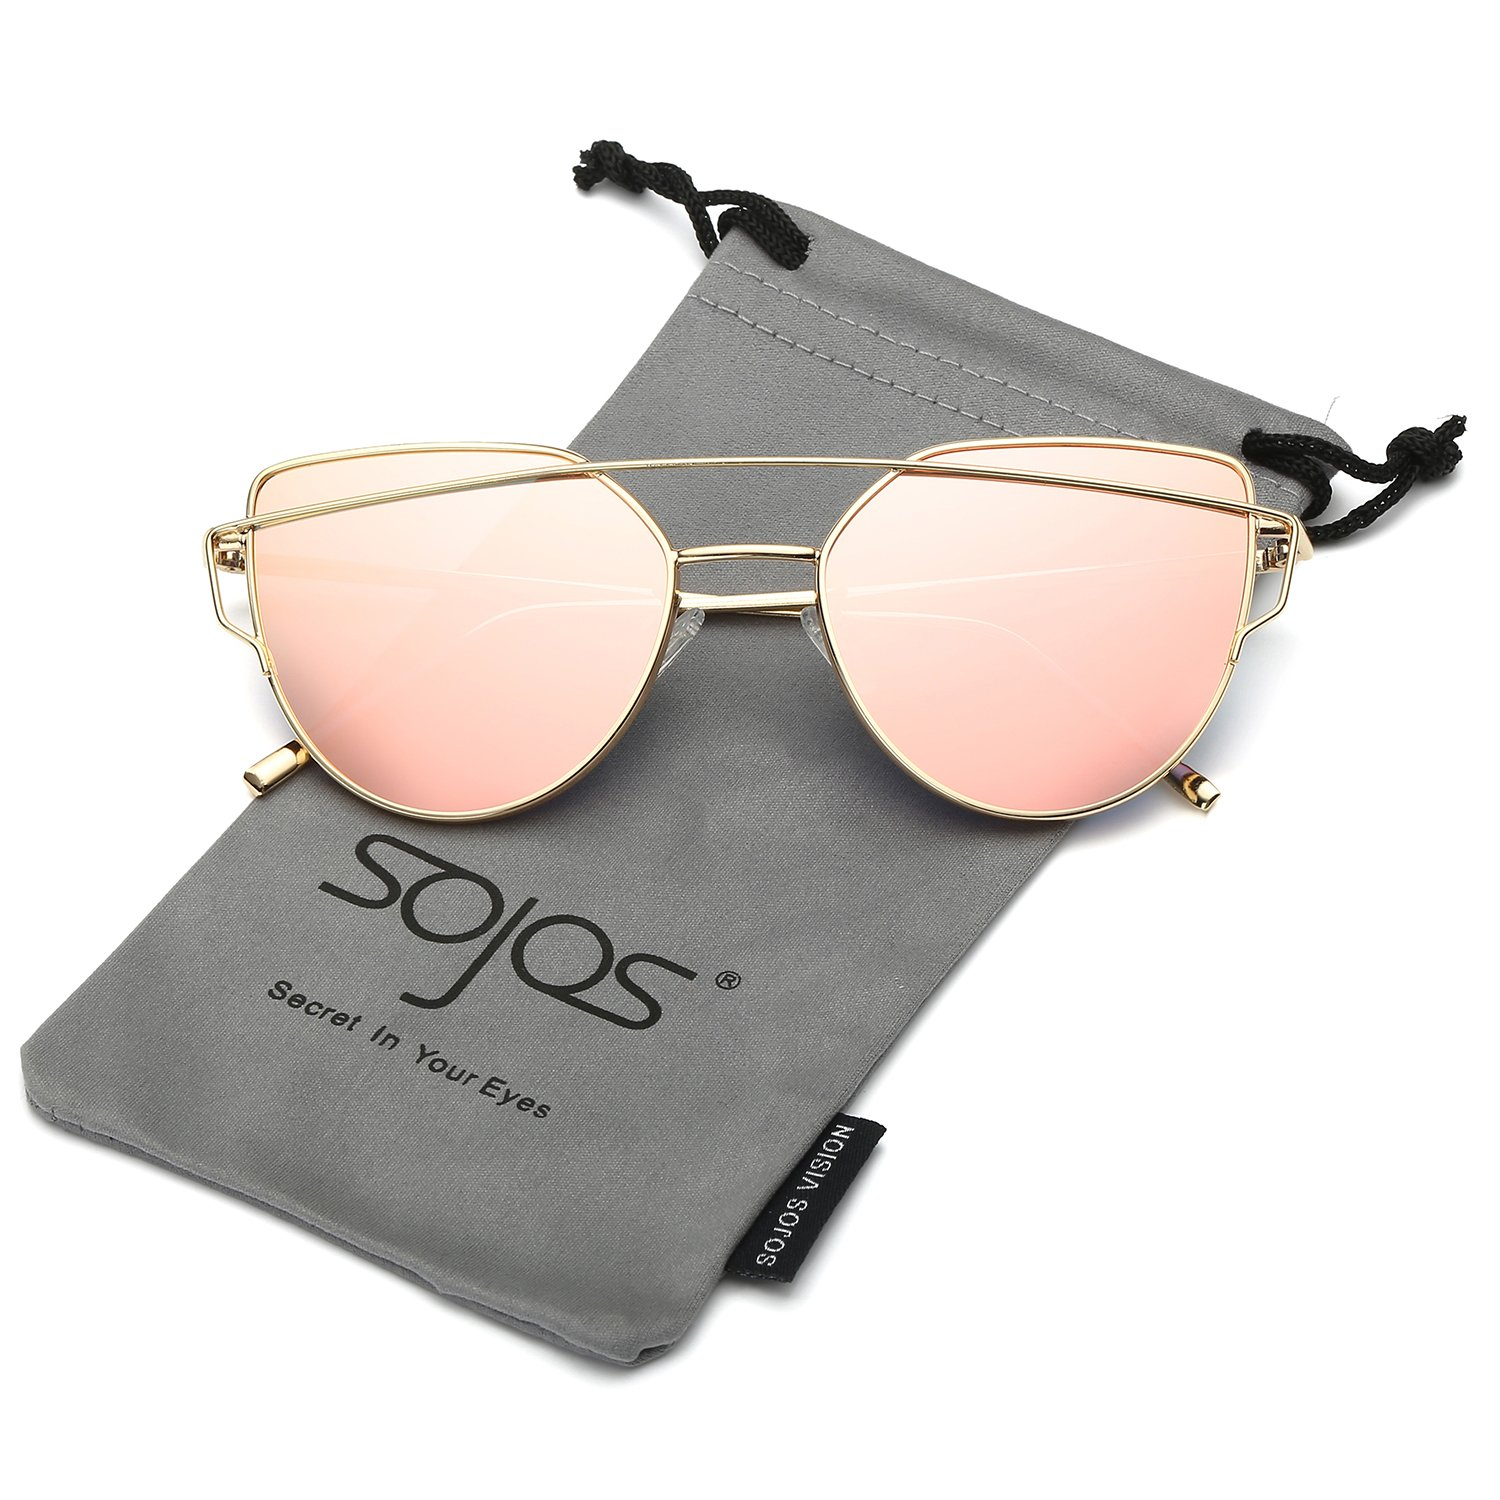 a4ea51044f2 SojoS Cat Eye Mirrored Flat Lenses Street Fashion Metal Frame Women  Sunglasses SJ1001 With Gold Frame Pink Mirrored Lens  Amazon.in  Clothing    Accessories